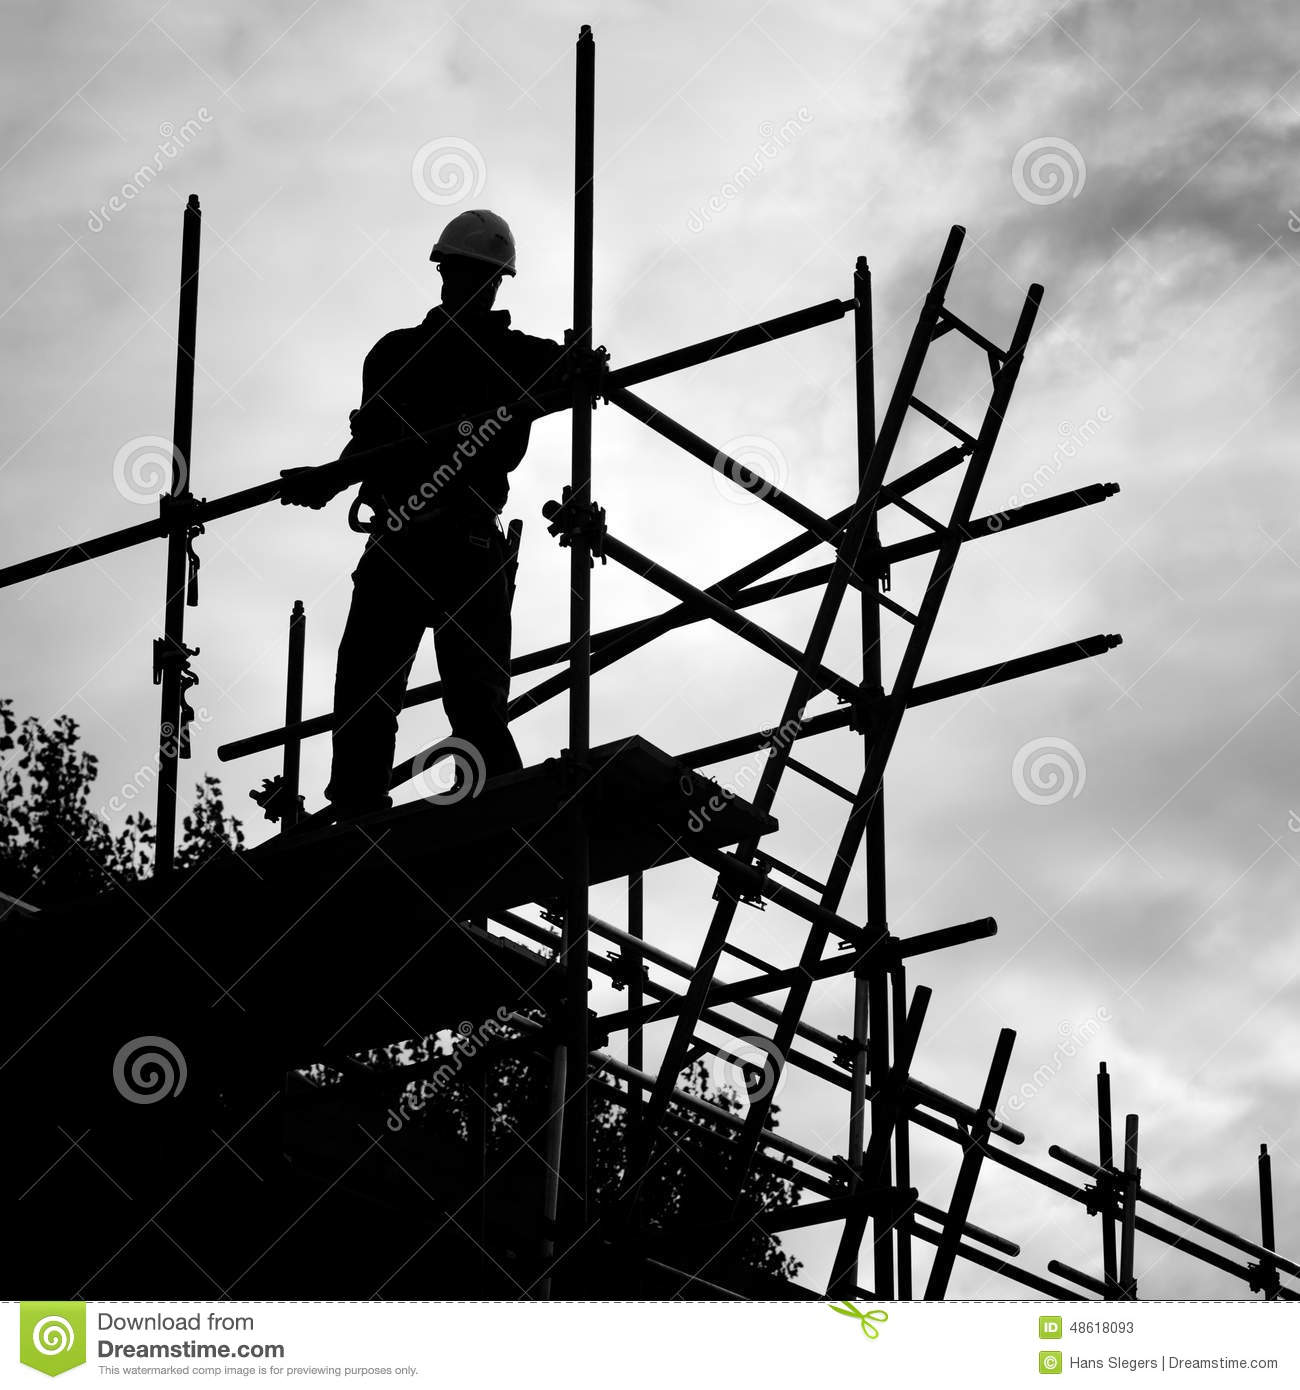 silhouette construction worker on scaffolding building site stock silhouette construction worker on scaffolding building site